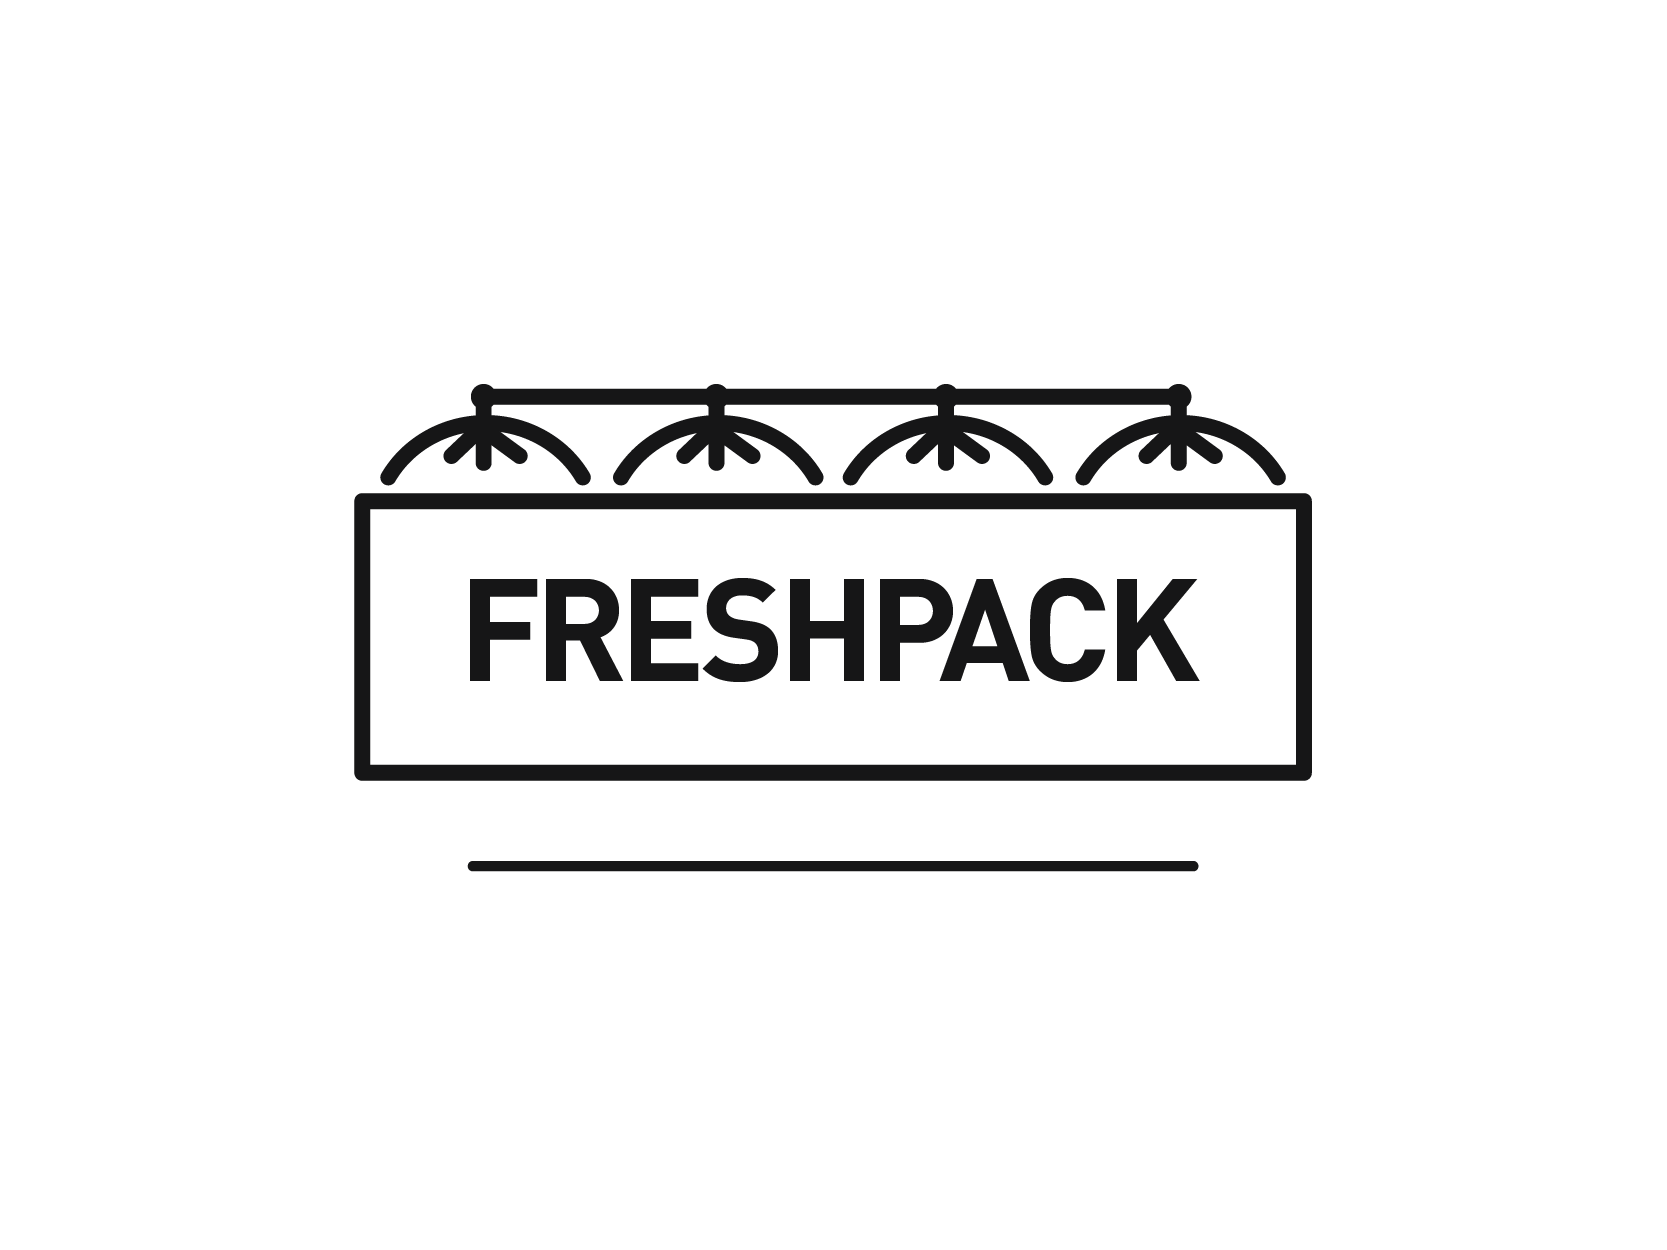 Freshpacklogo_completition-01